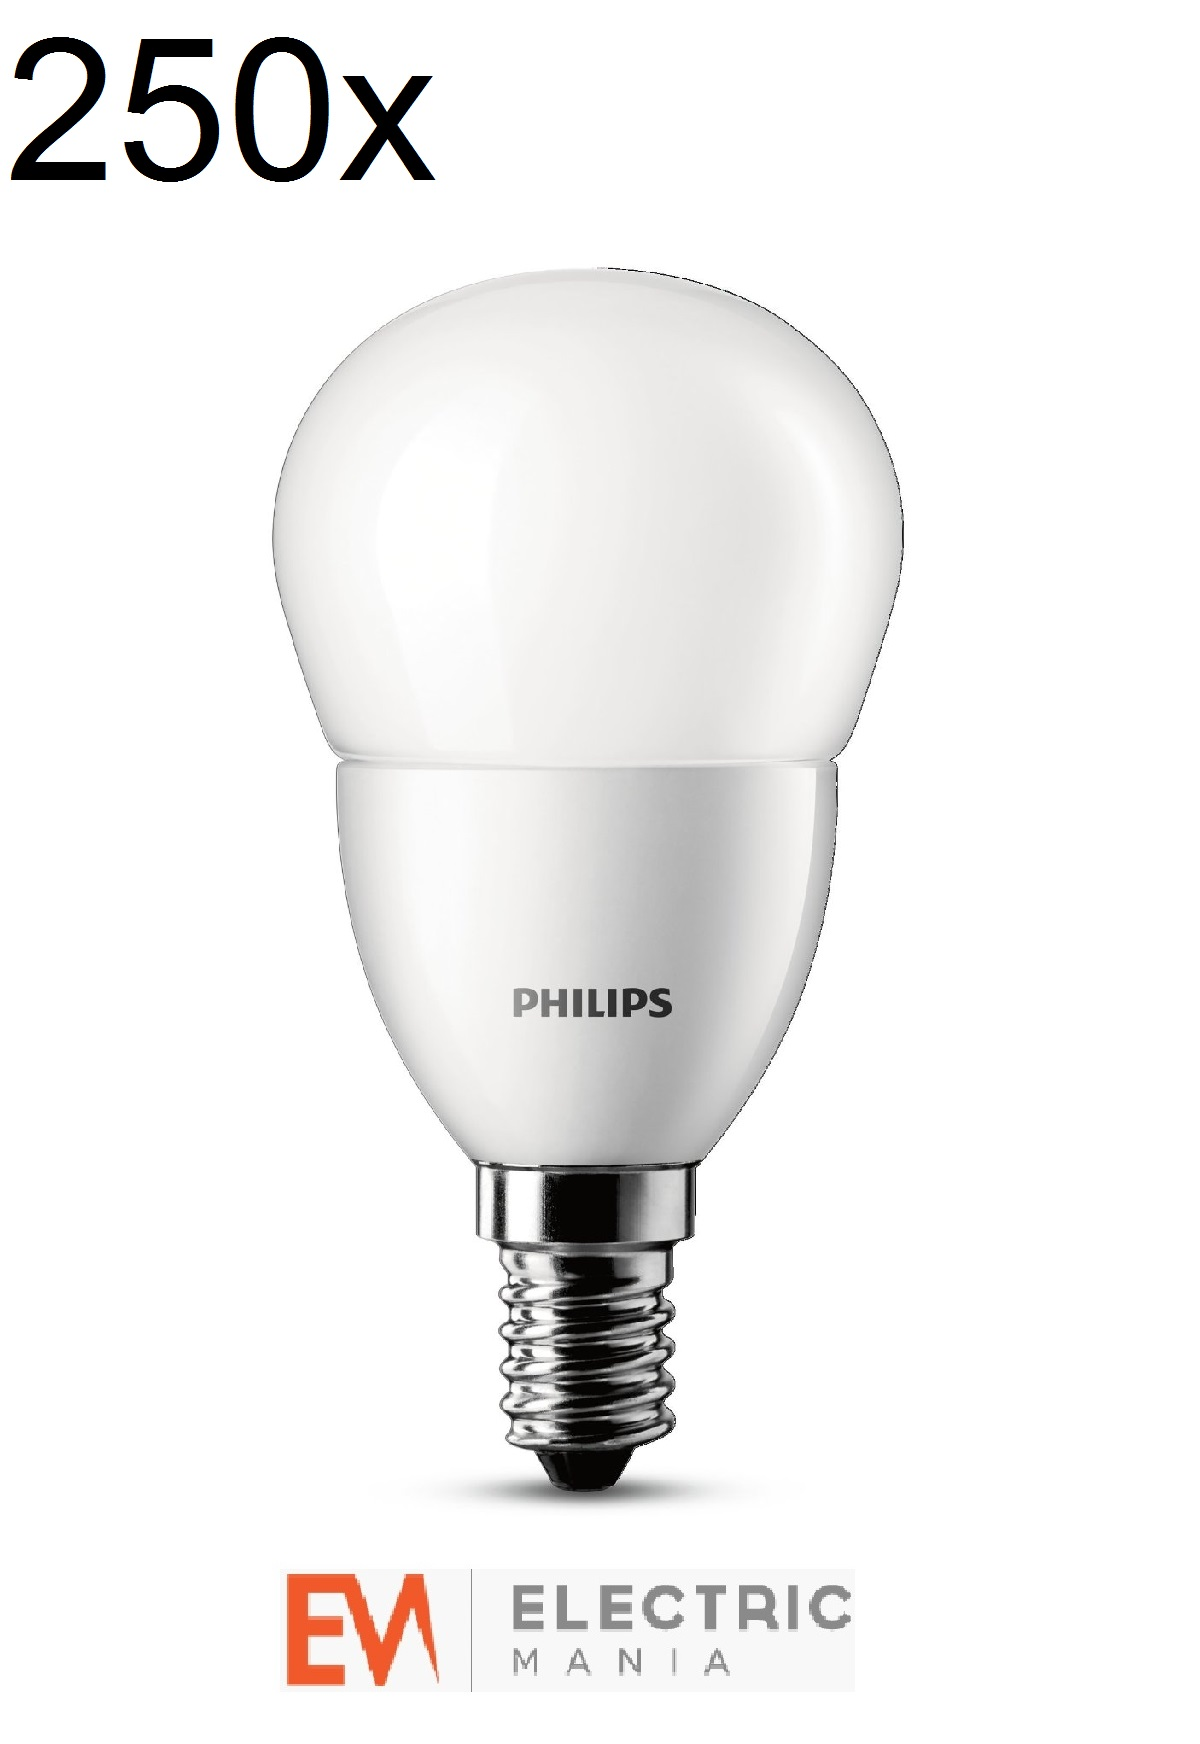 Image Is Loading 250x Philips LED Luster House Light Bulb Lamp